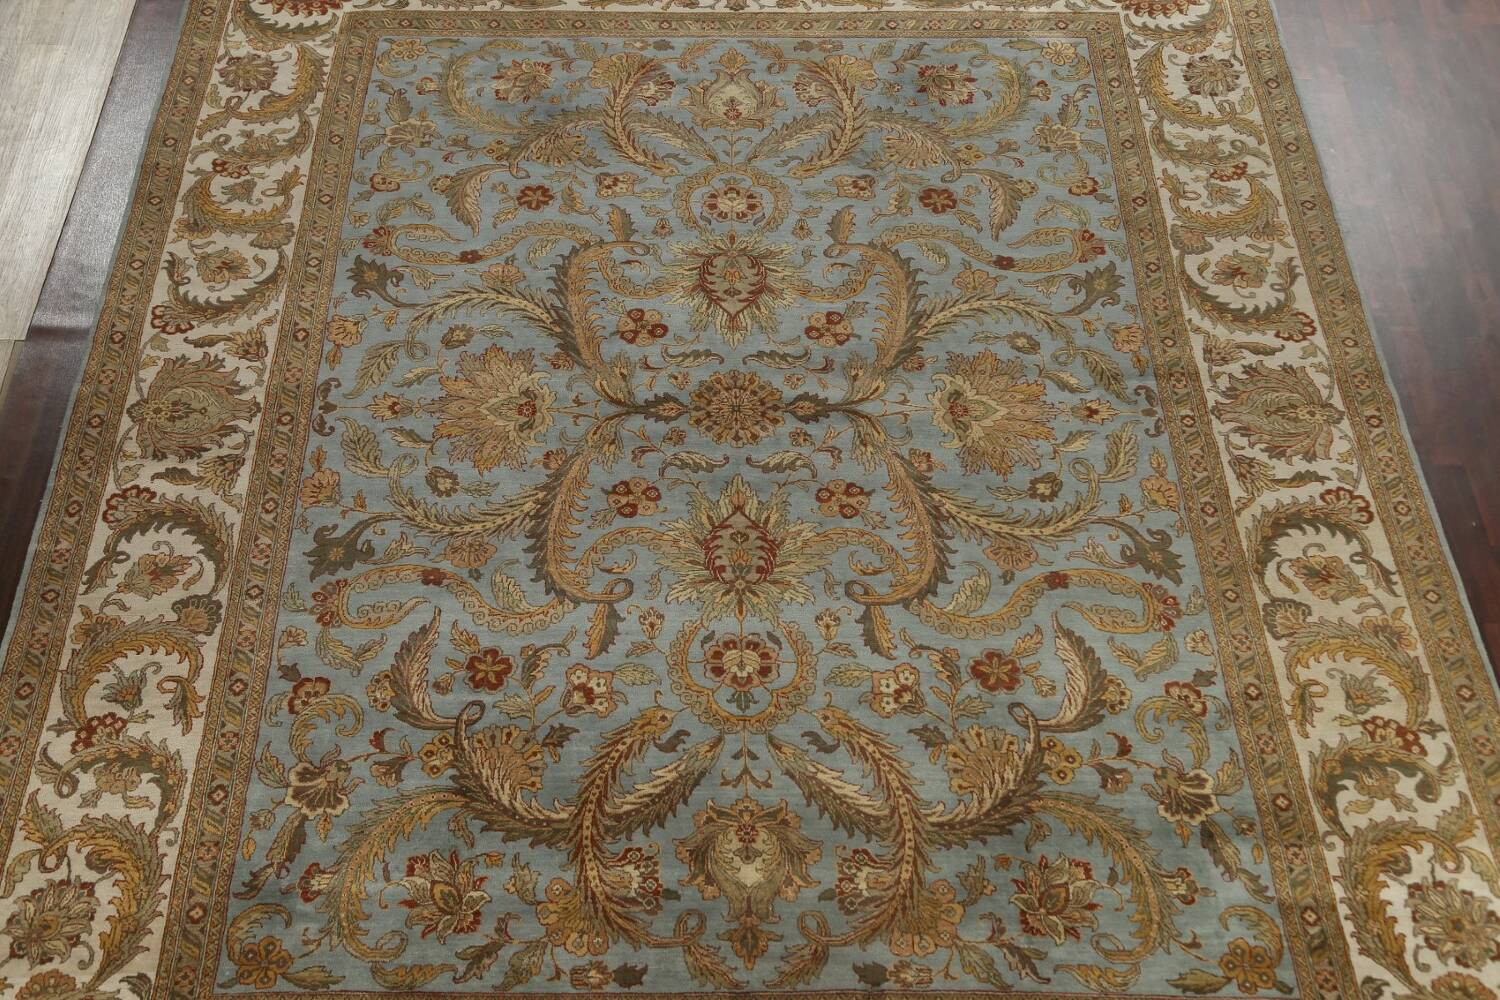 All-Over Floral Agra Oriental Area Rug 12x15 image 3